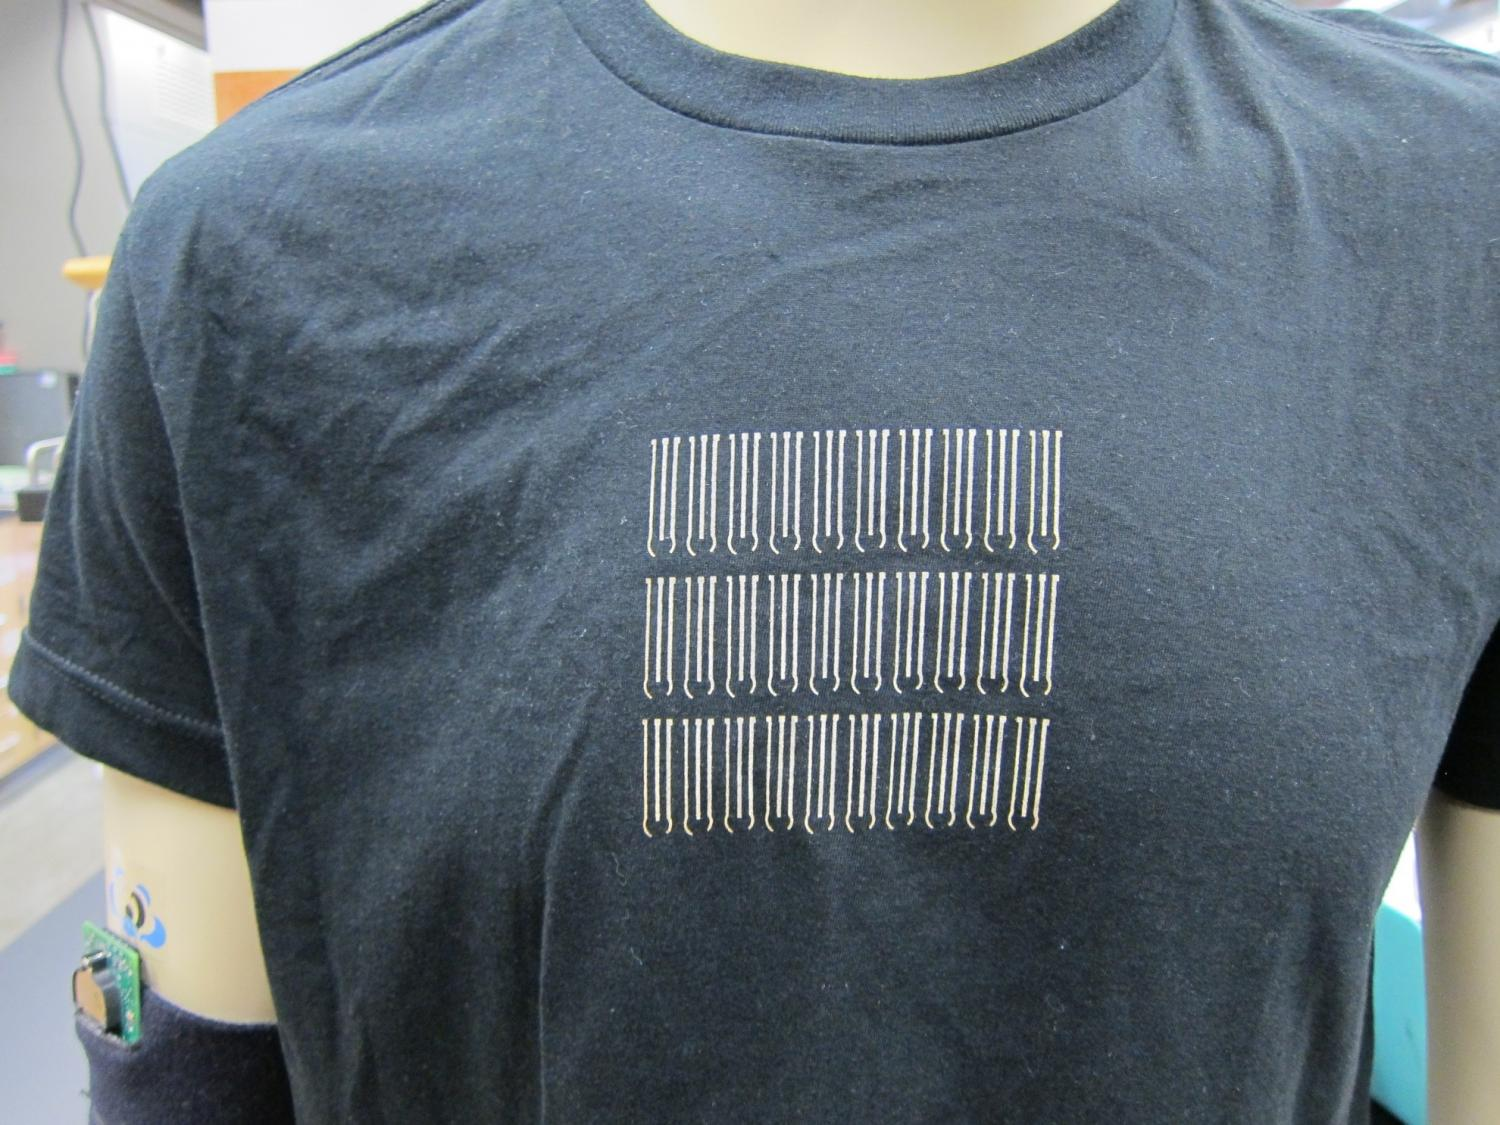 Engineers Win Grant To Make Smart Clothes For Personalized